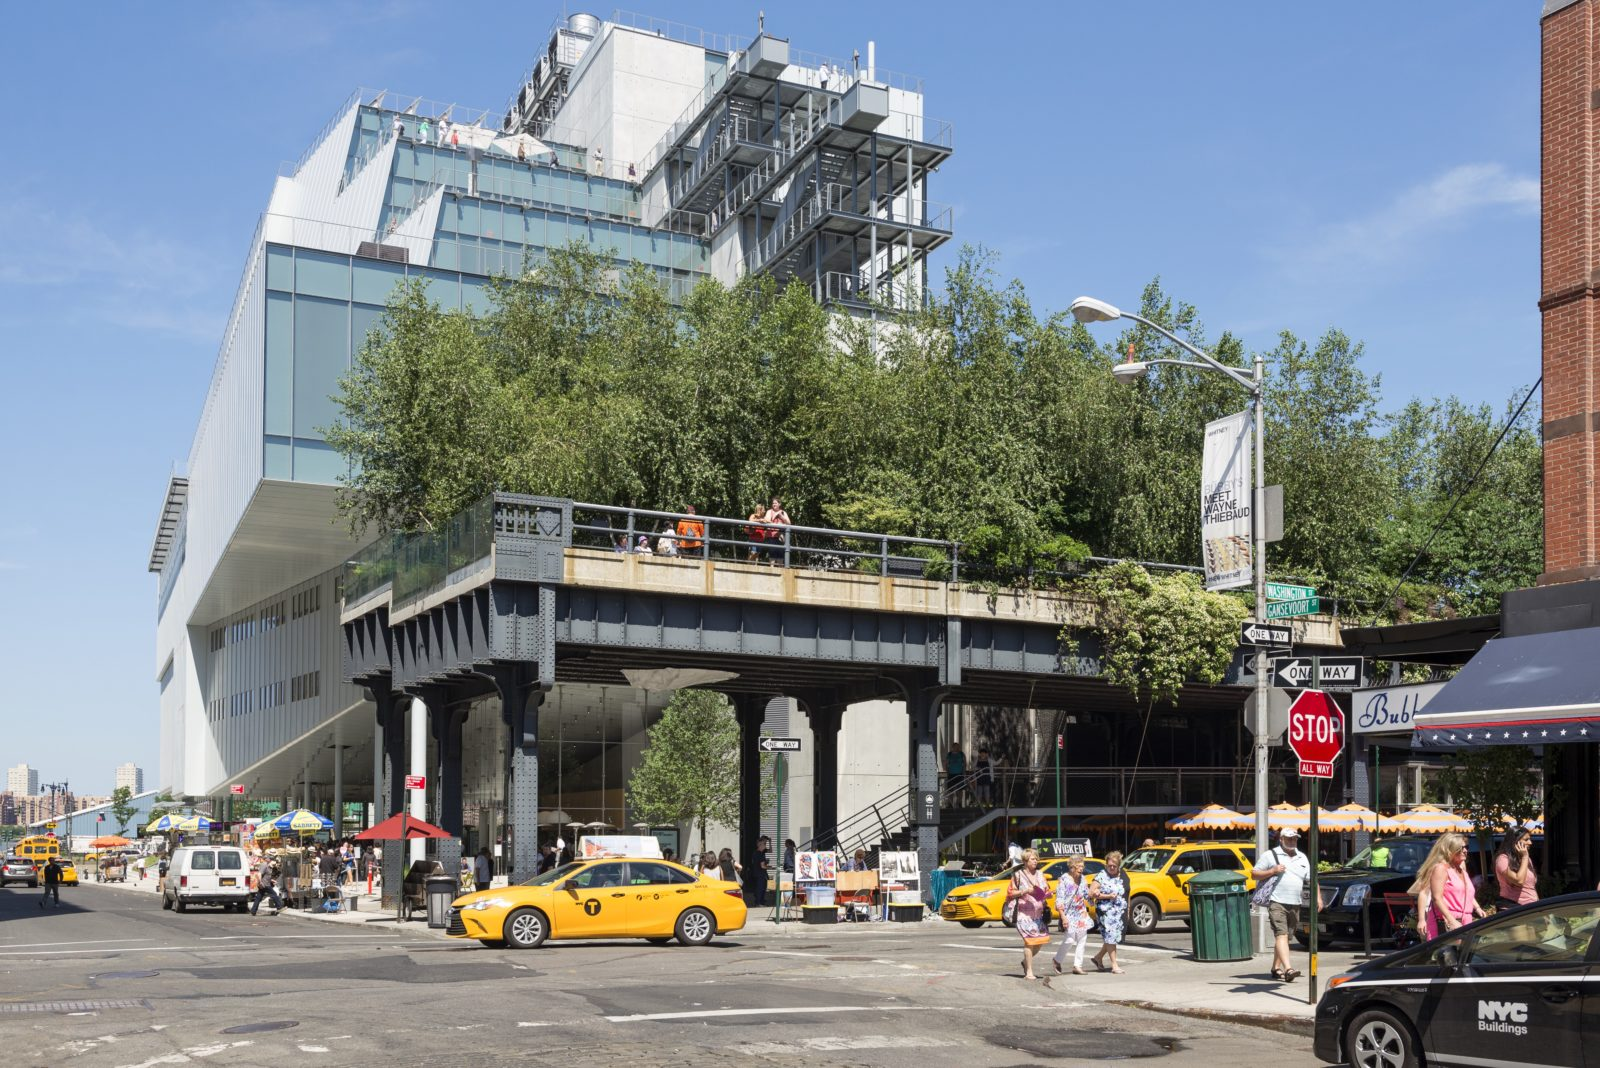 The High Line in New York, recipient of the 13th Veronica Rudge Green Prize in Urban Design. Photo by Timothy Schenck/Courtesy of Friends of the High Line